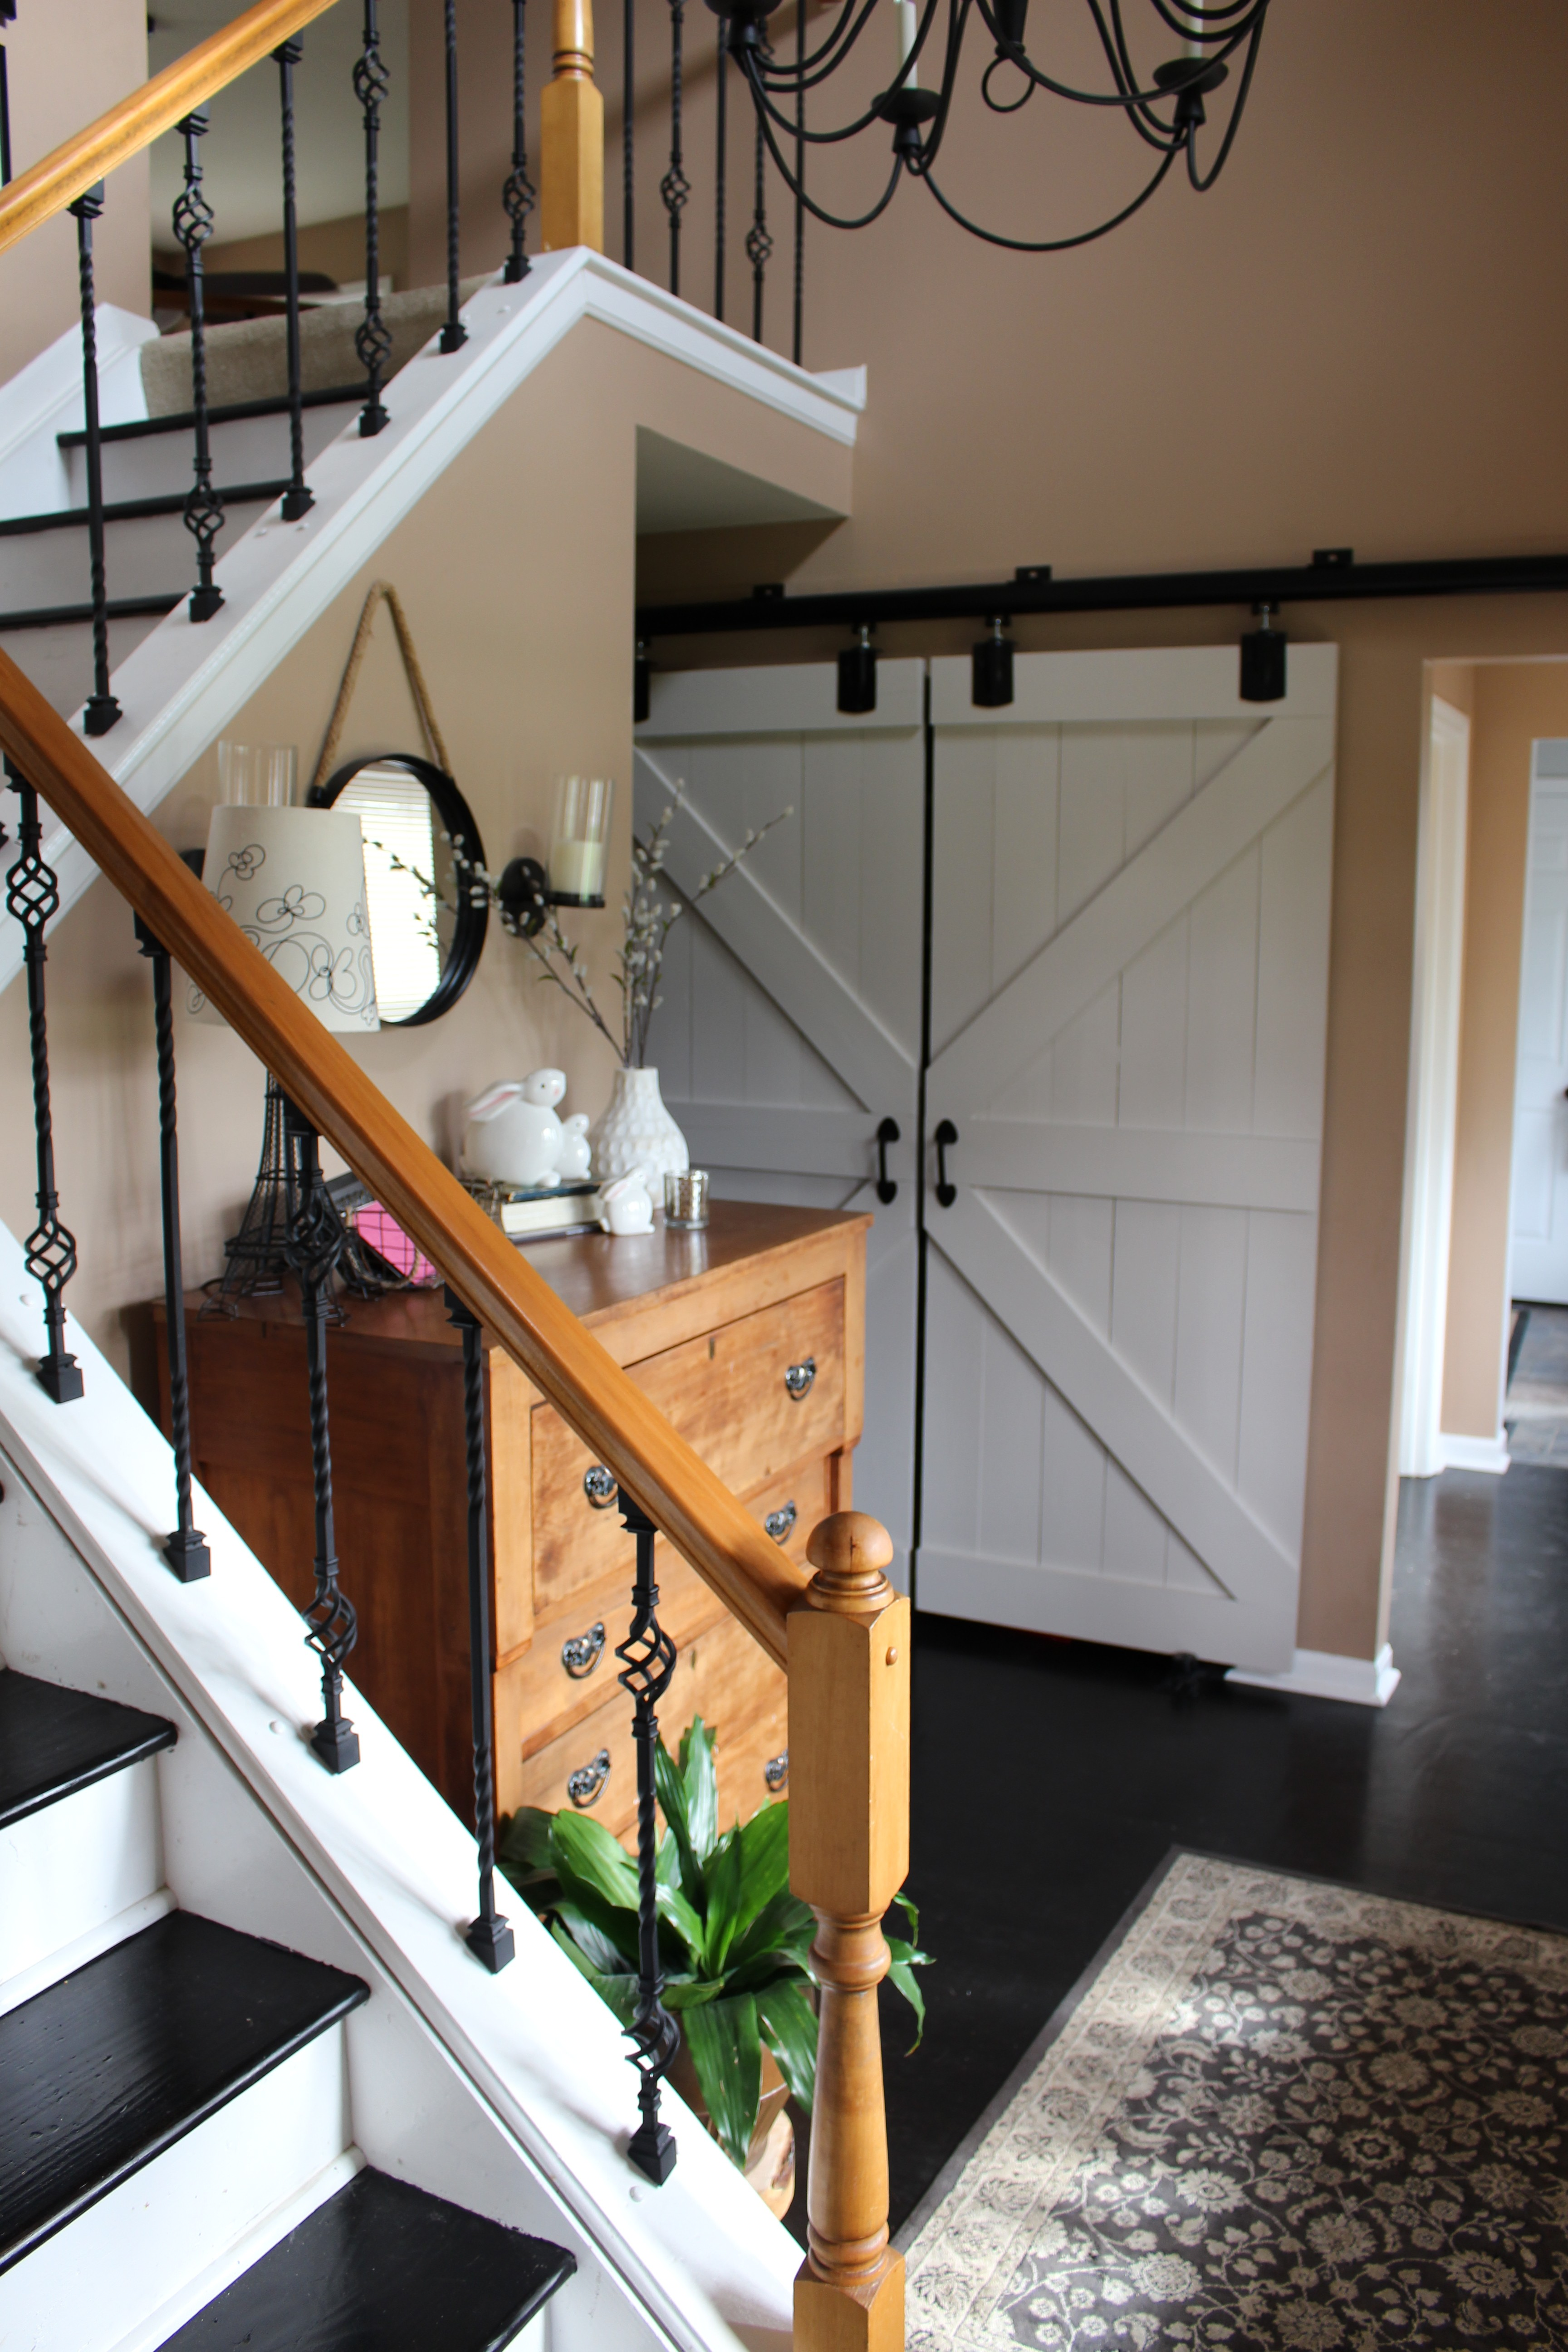 Barn Doors in Entryway by www.mylifefromhome.com